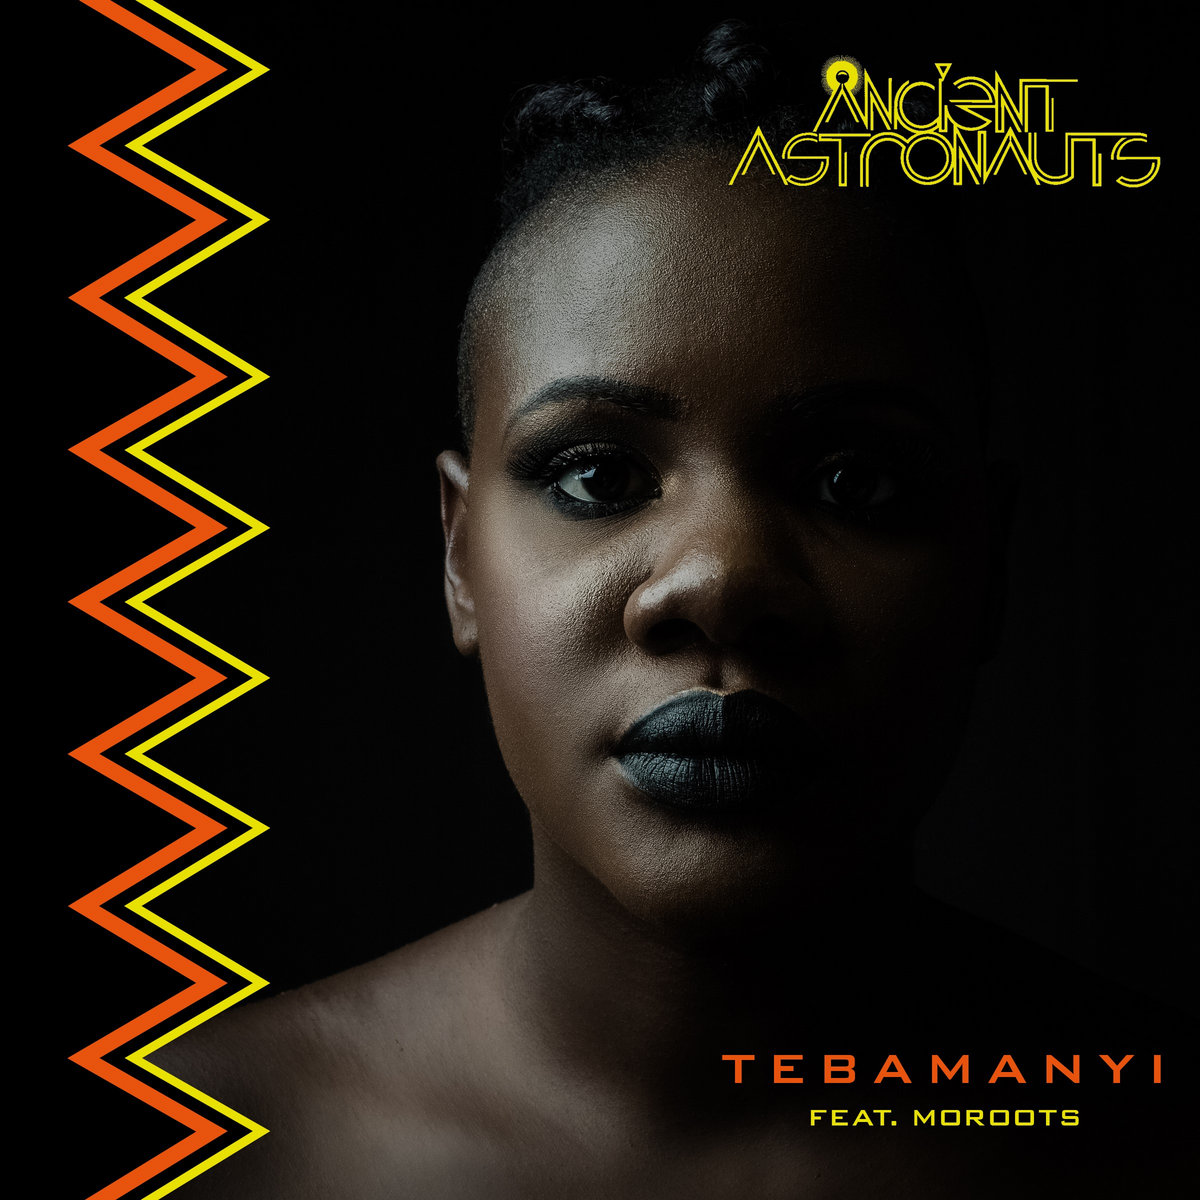 Tebamanyi feat. MoRoots | Ancient Astronauts | Switchstance Recordings